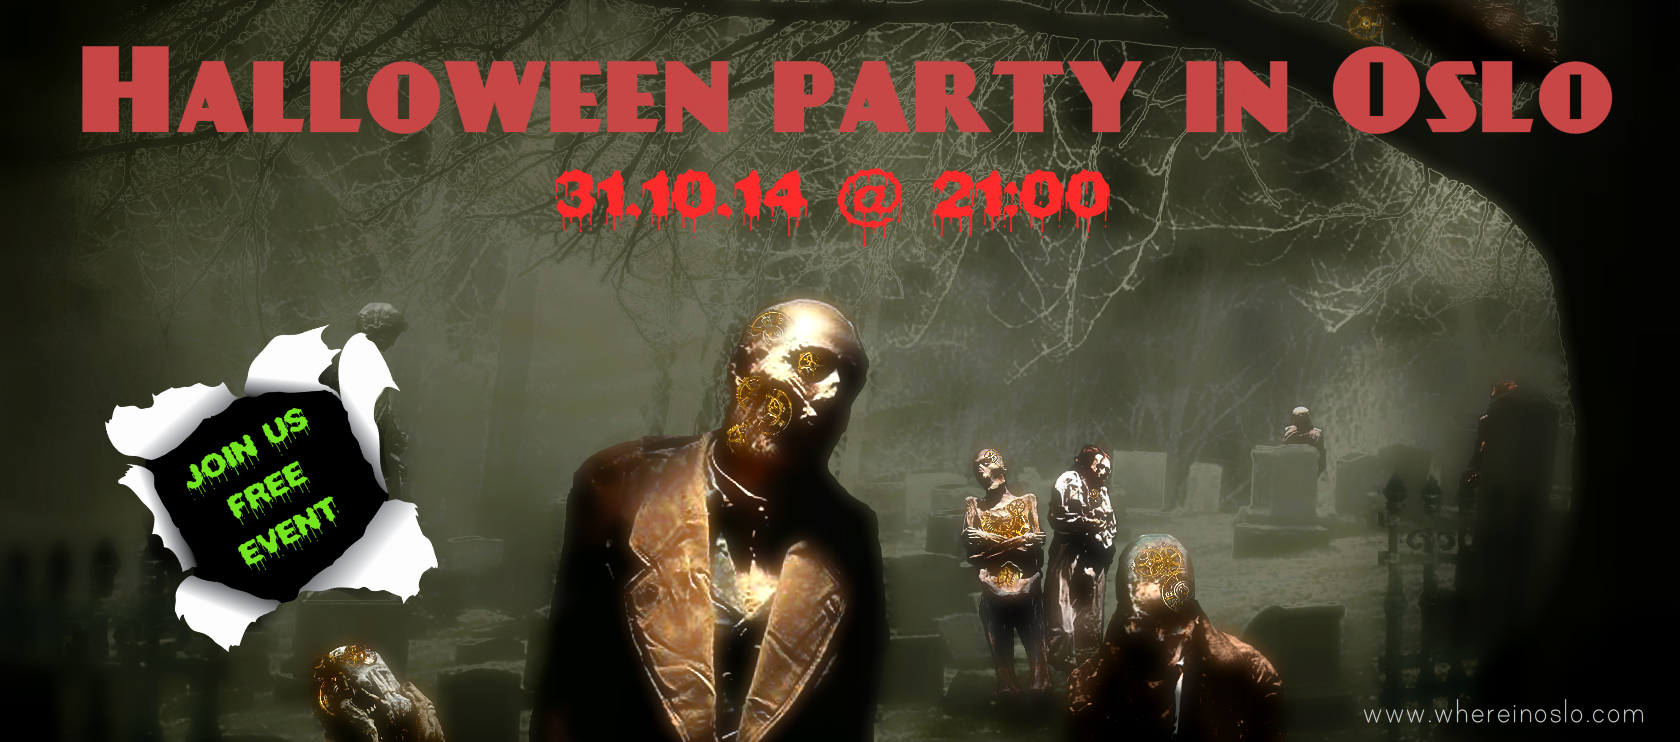 Halloween party in Oslo - Where in Oslo